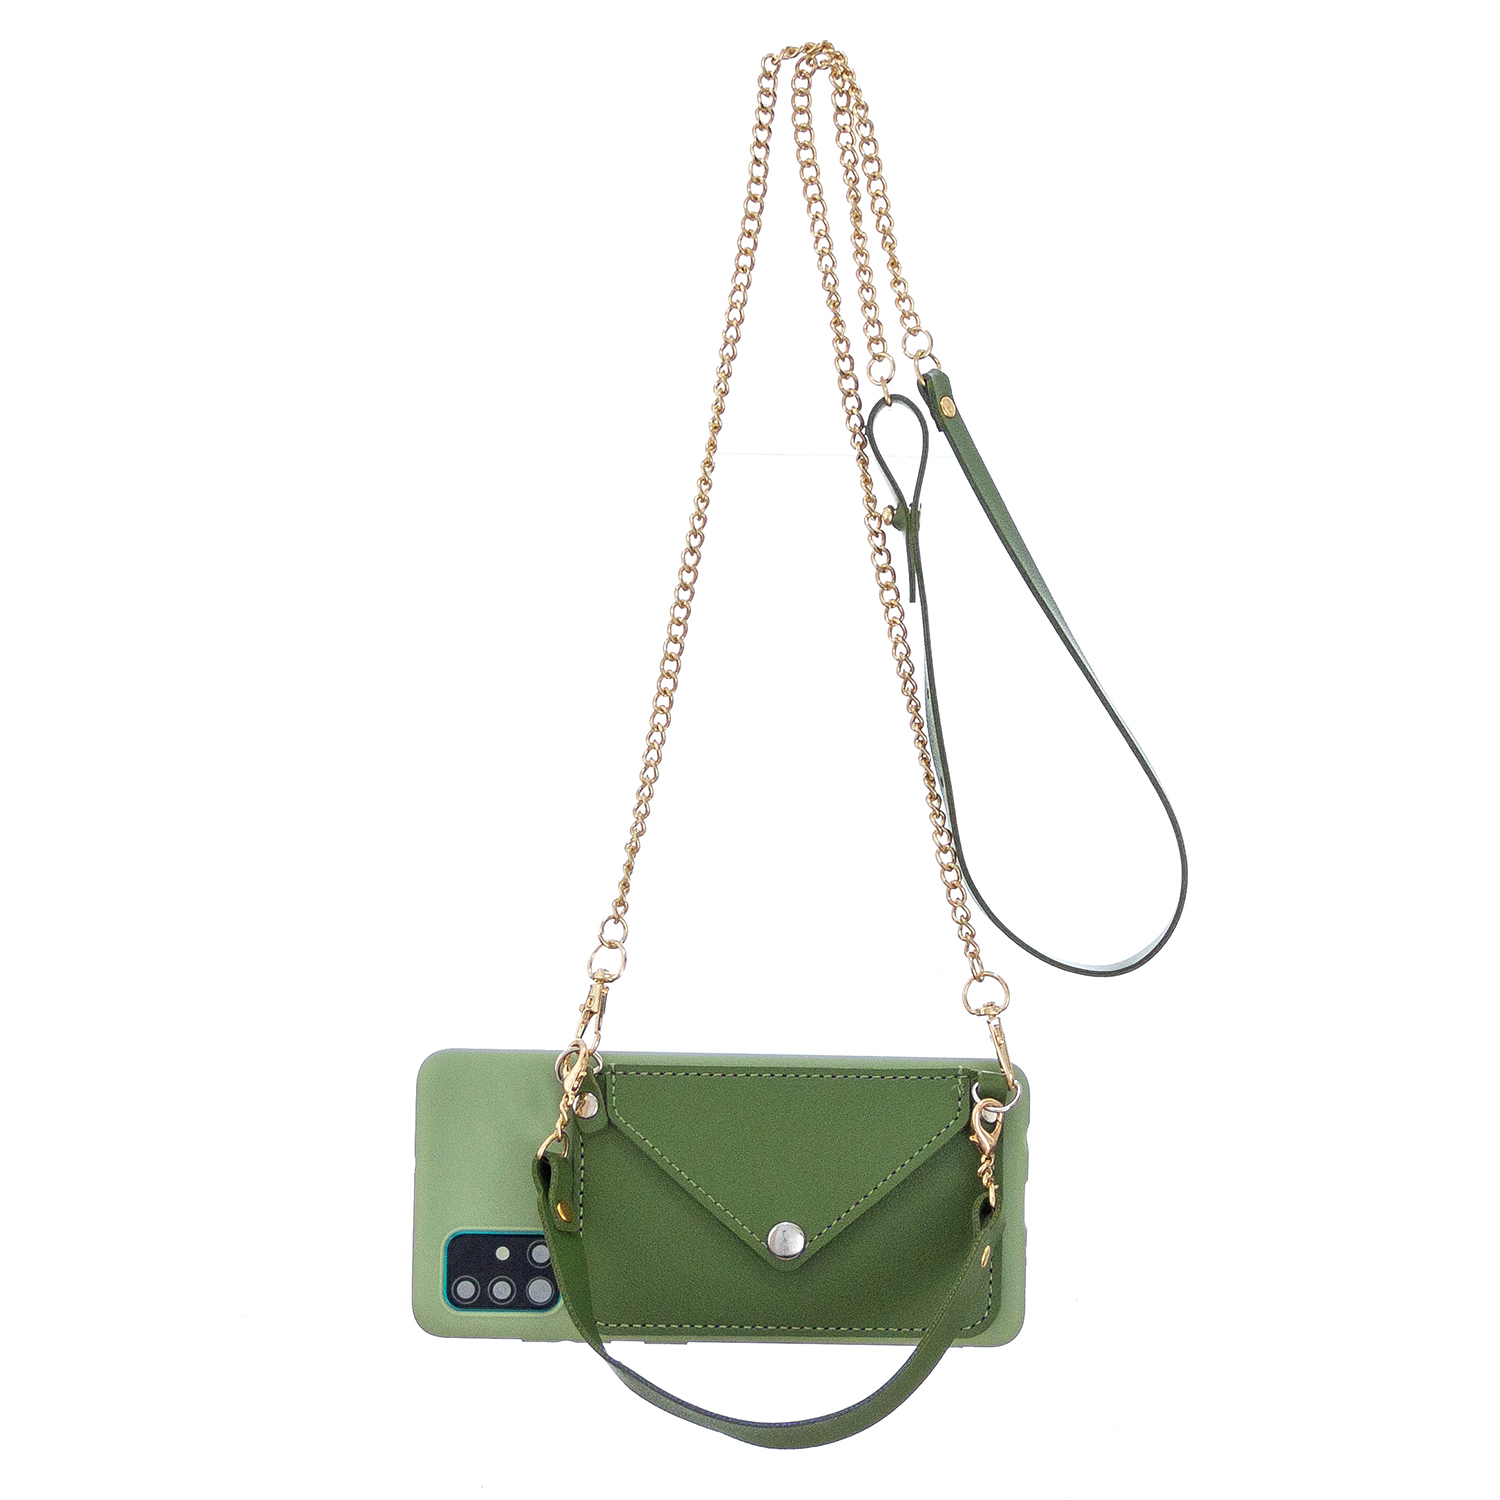 For HUAWEI P40/P40 Lite/P40 Pro Mobile Phone Cover with Pu Leather Card Holder + Hand Rope + Straddle Rope green